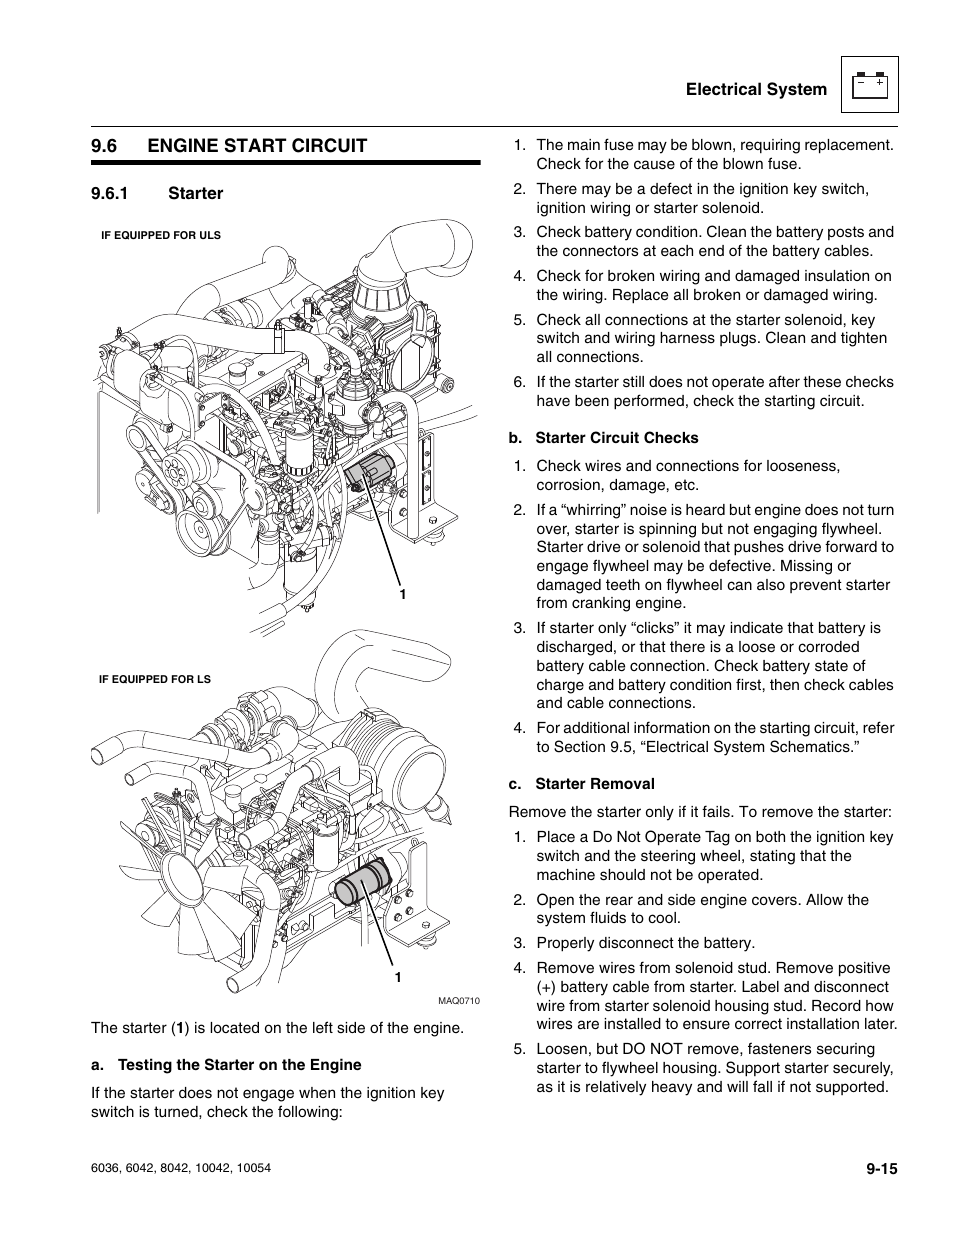 skytrak 6036 service manual page203 6036 skytrak wiring diagram traverse wiring diagram, american skytrak 6036 wiring diagram at bayanpartner.co